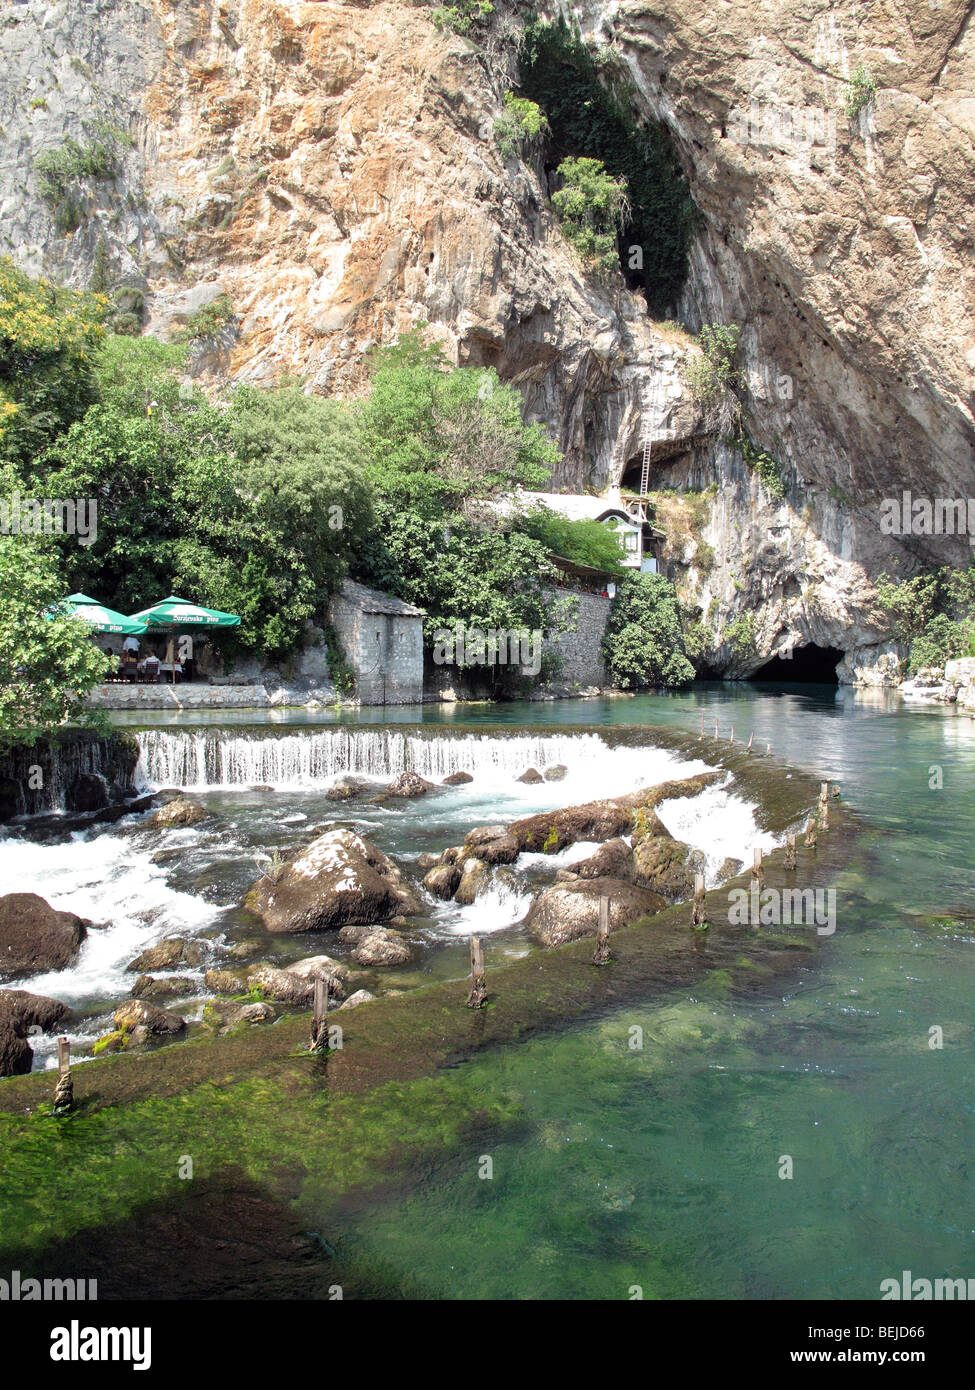 Bosnia and Herzegovina, Blagaj, outing spot on the banks of Buna river. About 15km southeast of town Mostar. - Stock Image